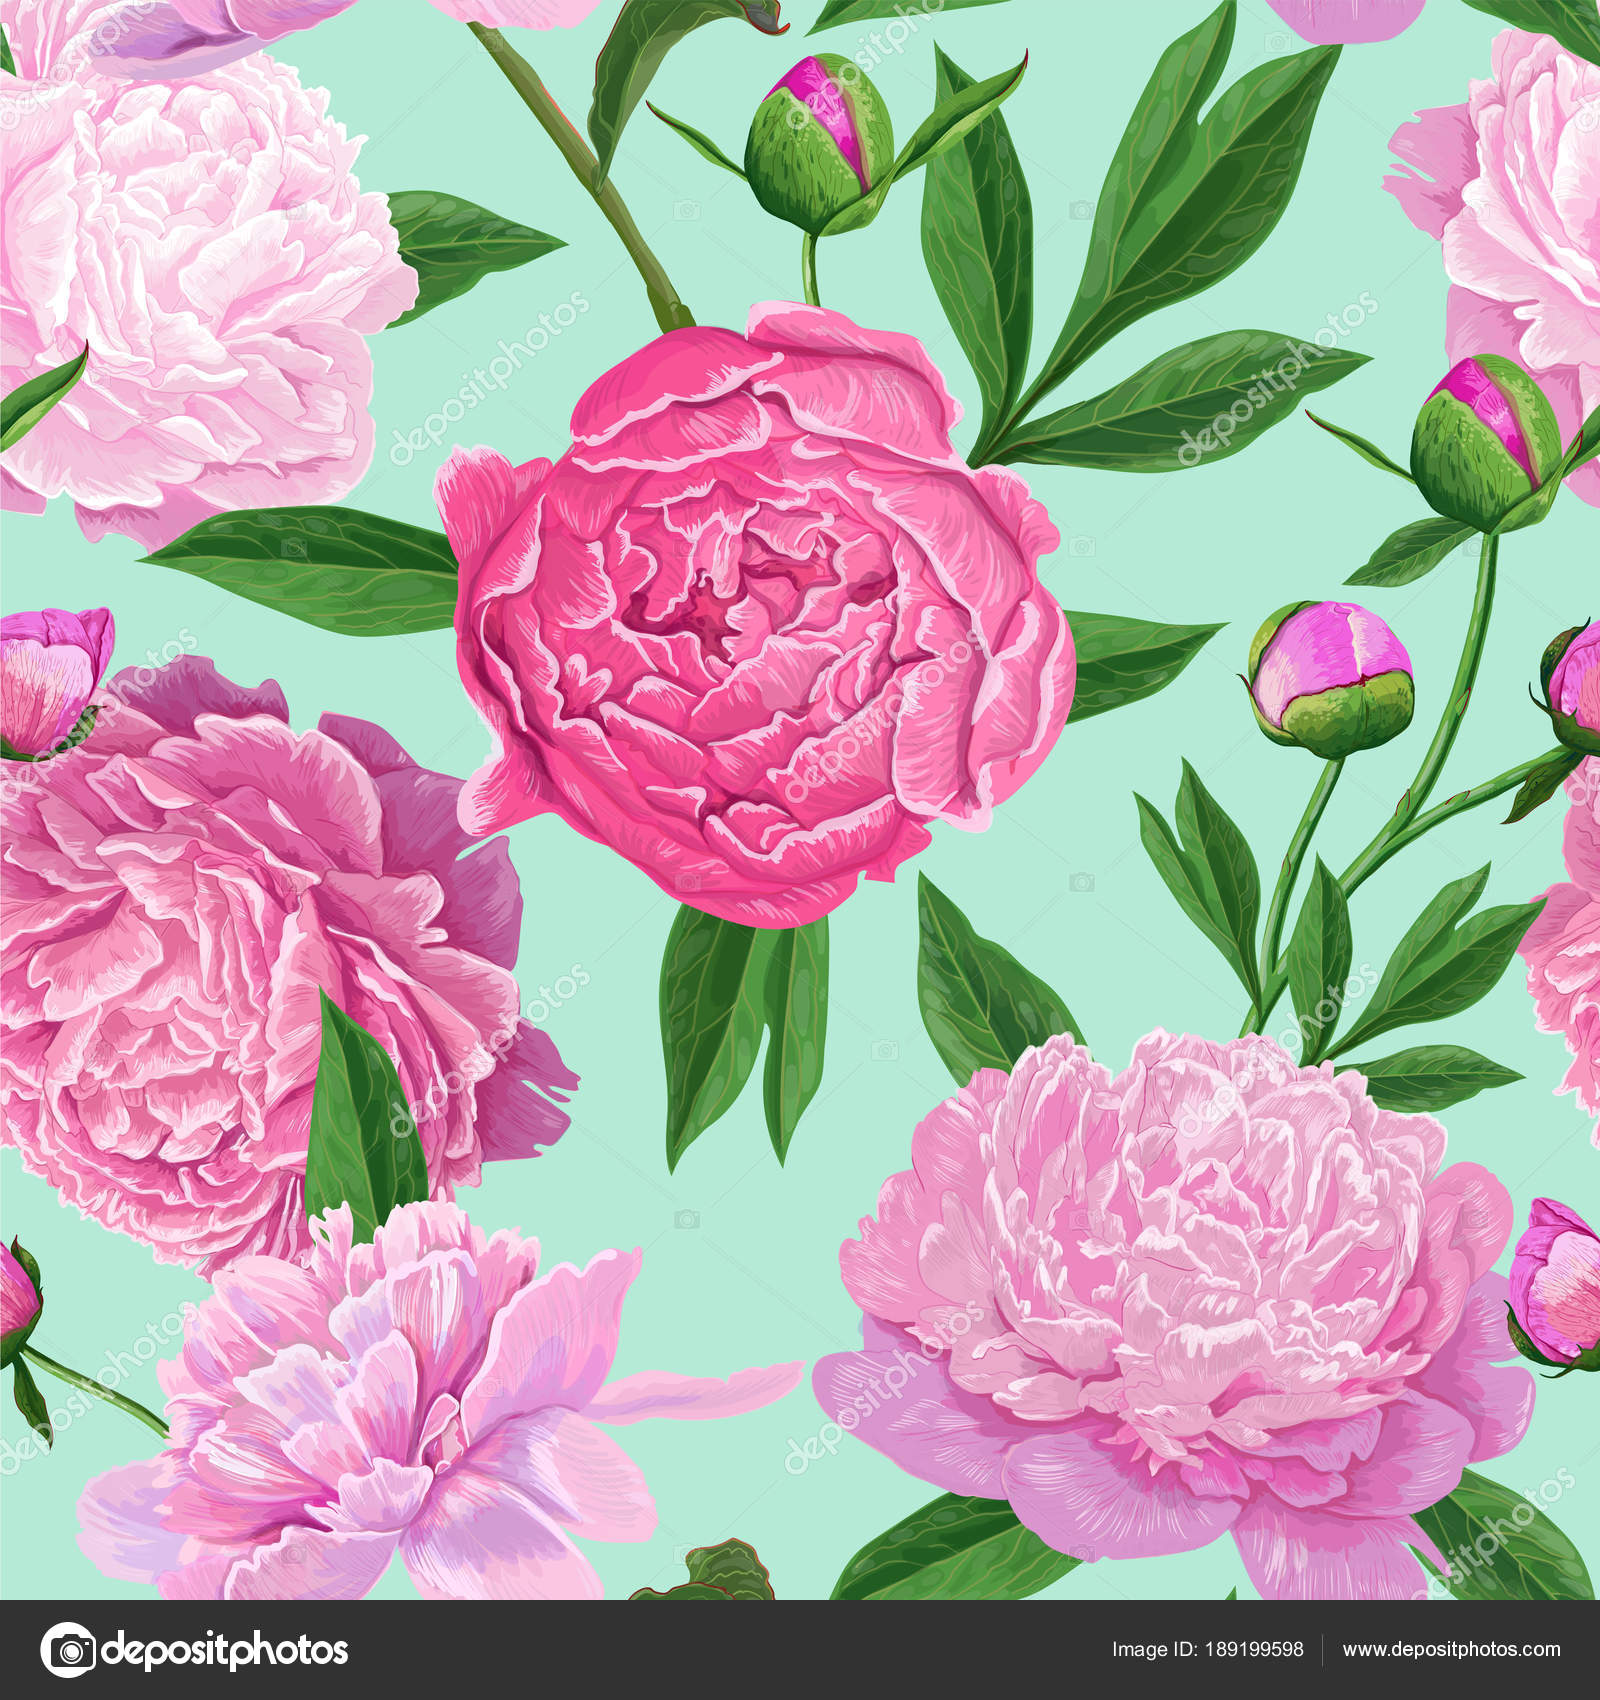 Floral Seamless Pattern with Pink Peony Flowers Spring Blooming